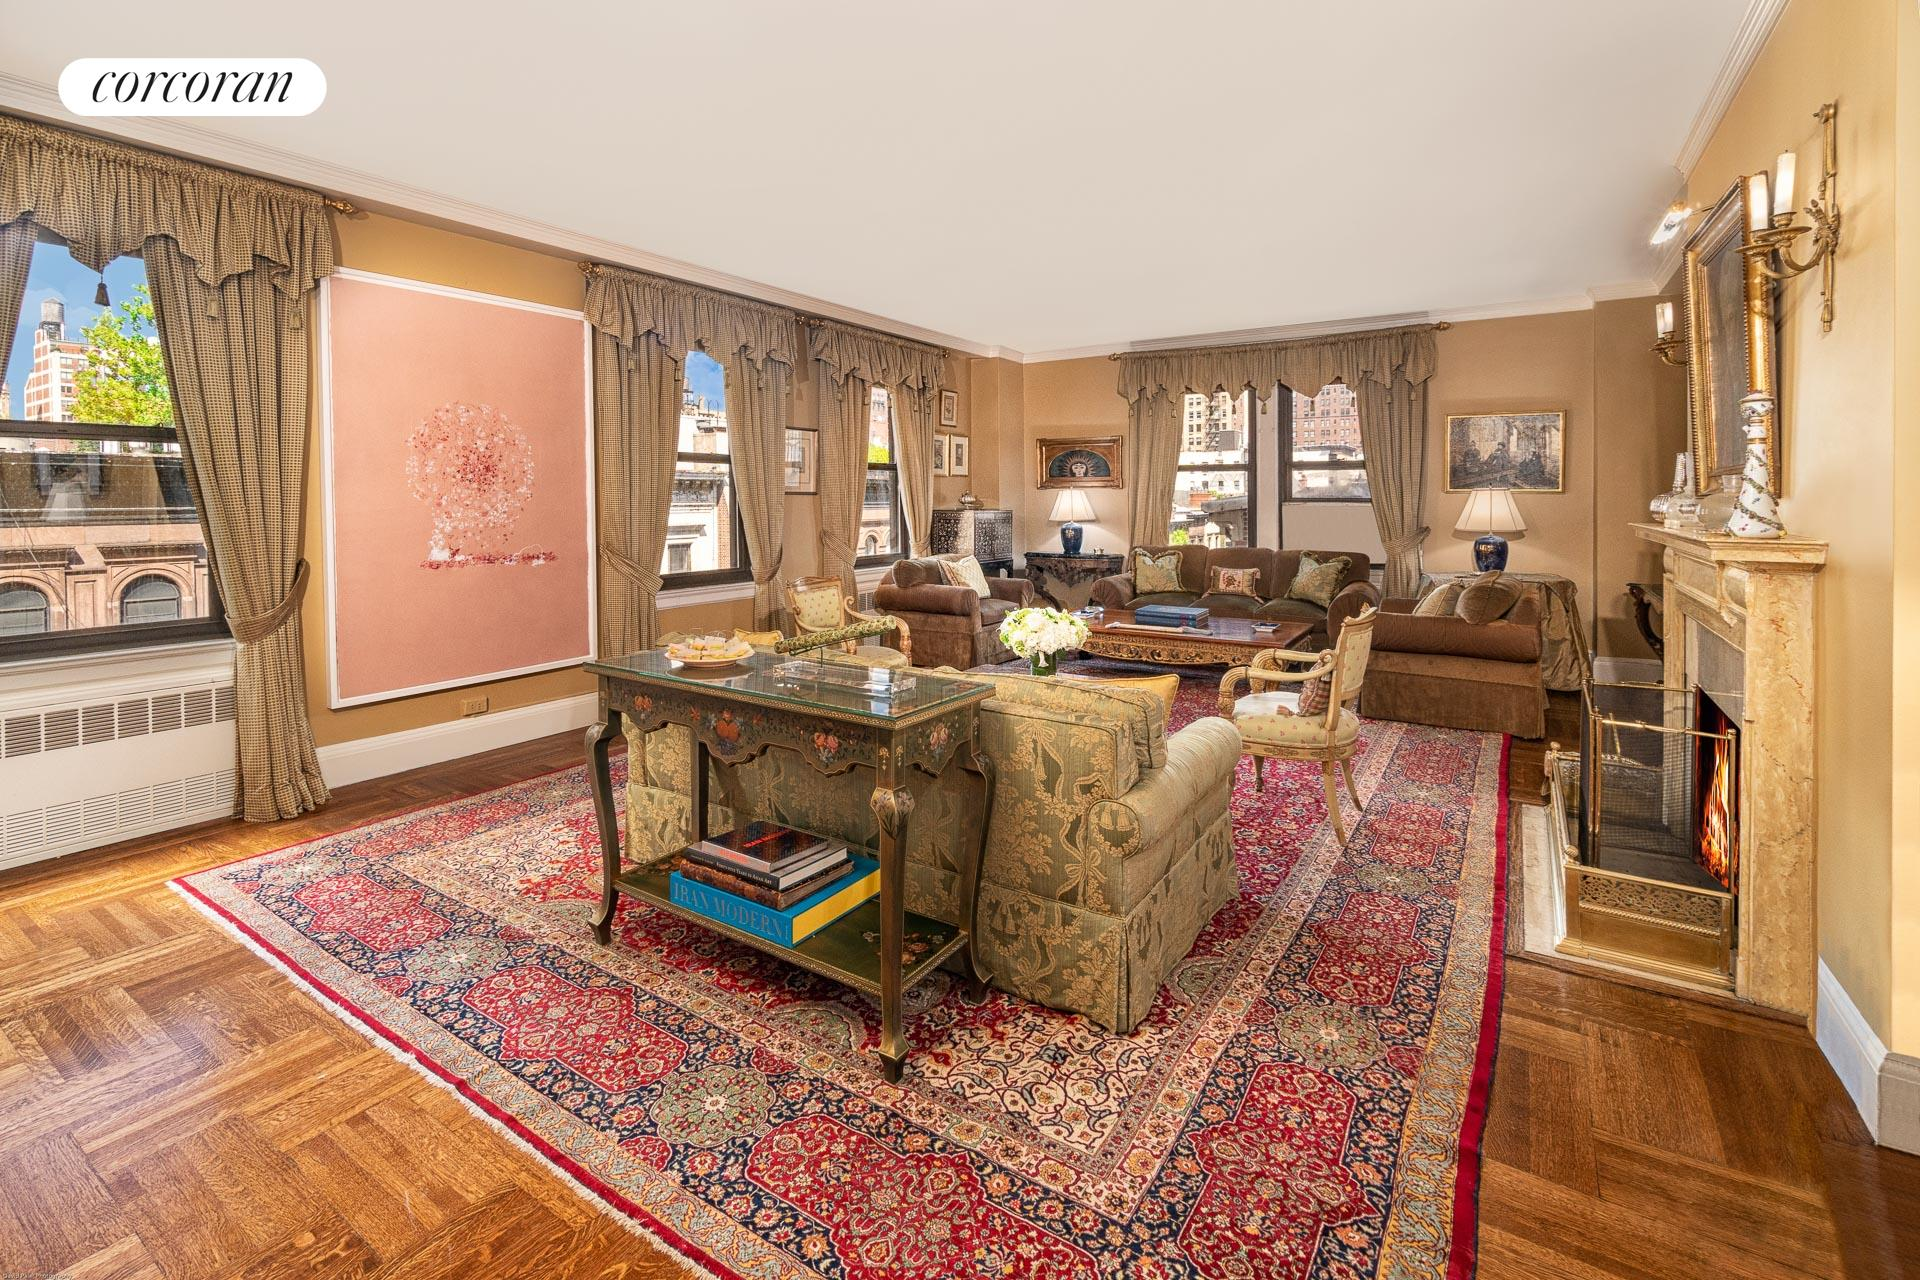 This prewar Fifth Avenue J.E.R. Carpenter twelve room residence is located in one of Carnegie Hill's premier white-glove co-operatives. Drenched in sunlight, the corner residence boasts grand oversized rooms perfectly suited for gracious entertaining and living. There are five bedrooms or four and a library and five windowed full bathrooms. Throughout the magnificent home there are high ceilings, oversized windows, prewar architectural details, hardwood floors, and picturesque views.   A private elevator landing opens onto a gracious entrance gallery that leads to the palatial 28-foot long corner living room which has a wood burning fireplace and five windows facing north and east overlooking the landmarked townhouses on 93rd Street. Adjacent through French doors is the formal dining room which provides an elegant space for gatherings. The dining room can also be accessed off the gallery and connects directly to a butler's pantry with a sink and incredible storage. There is a large windowed eat-in kitchen as well as a second butler's pantry which can be converted into a breakfast room. Off the kitchen is a home office, a laundry room with a side-by-side washer/dryer and a sink, a staff bedroom and a hallway windowed bathroom. Also off the gallery is an enormous corner library or fifth bedroom that faces east over the neighboring gardens and has built-in bookshelves and an office area. The room has an en-suite windowed bathroom and a large walk-in closet. An oversized coat closet completes the public spaces.    As for the private quarters, there is a separate bedroom hallway. In the corner is the extraordinary master bedroom suite which faces south and east overlooking the neighboring townhouse gardens. The suite includes a walk-in closet and an en-suite windowed bathroom. There are three additional bedroom suites all with excellent closet space and two additional windowed bathrooms.    This elegant pre-war cooperative was built in 1926 and houses just forty-one resi